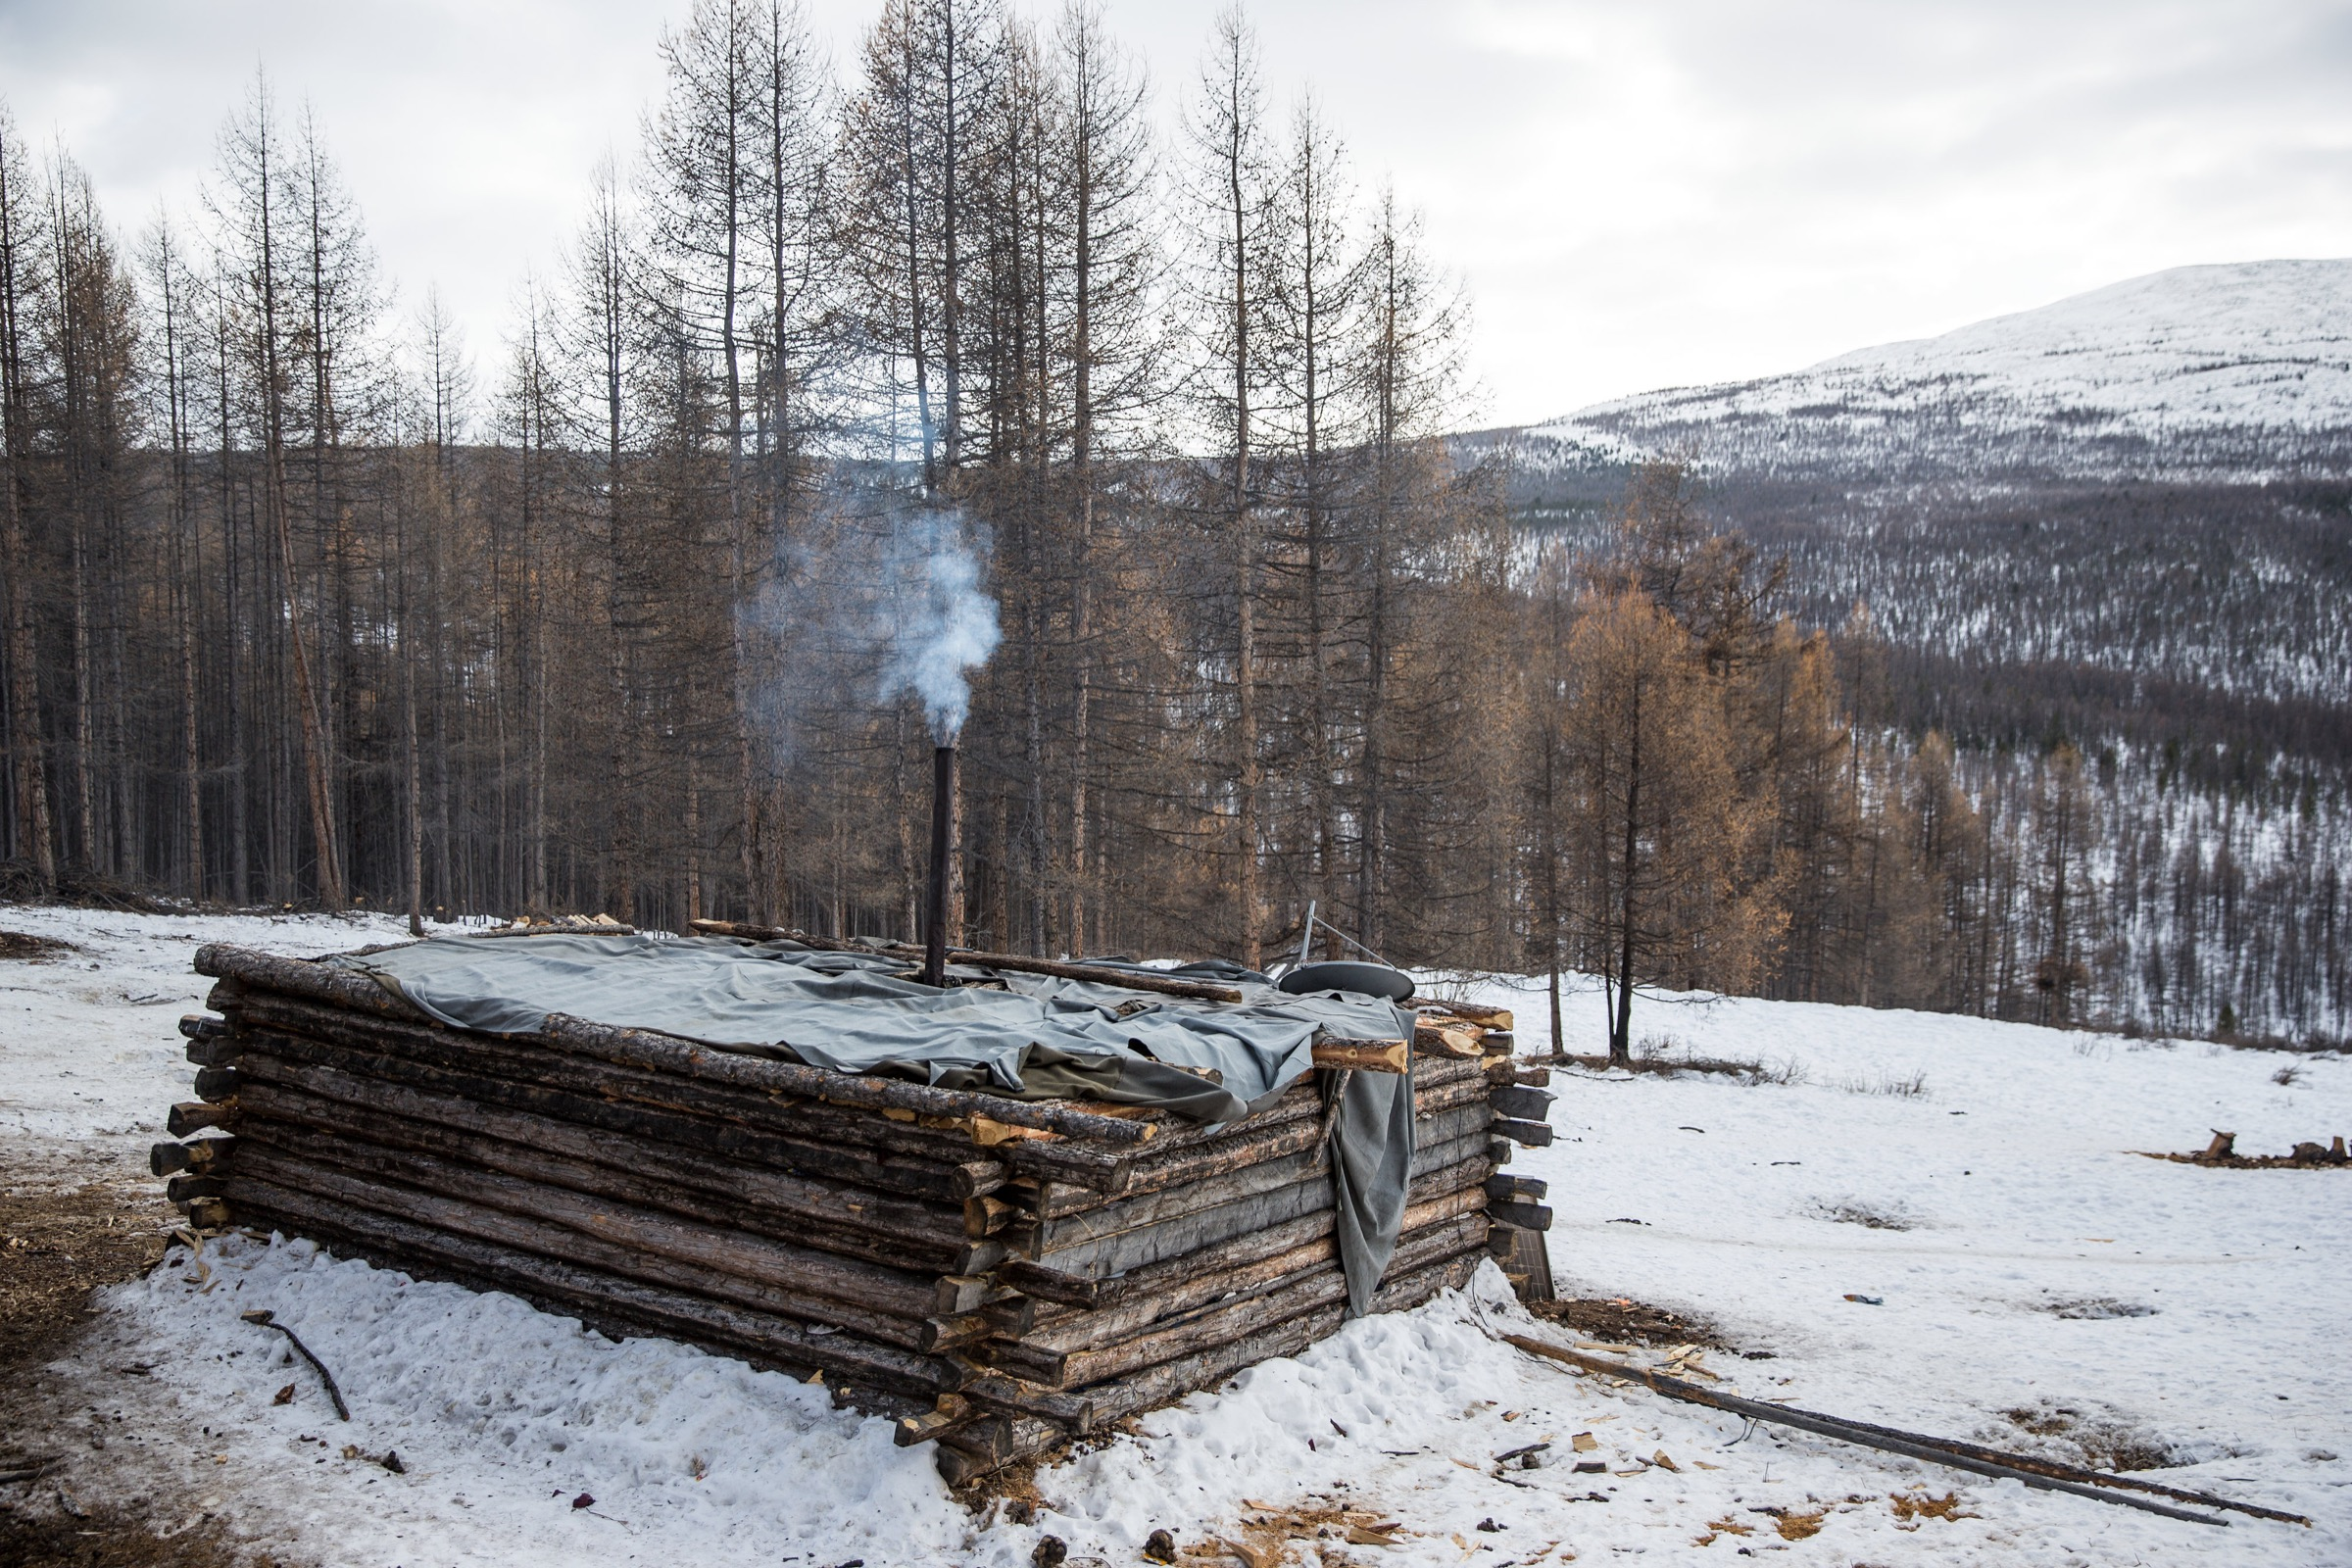 Smoke rises from the chimney of a log cabin home near Tsagaan Nuur, Mongolia. Such dwellings are becoming more common as teepees become less tenable in a changing landscape.